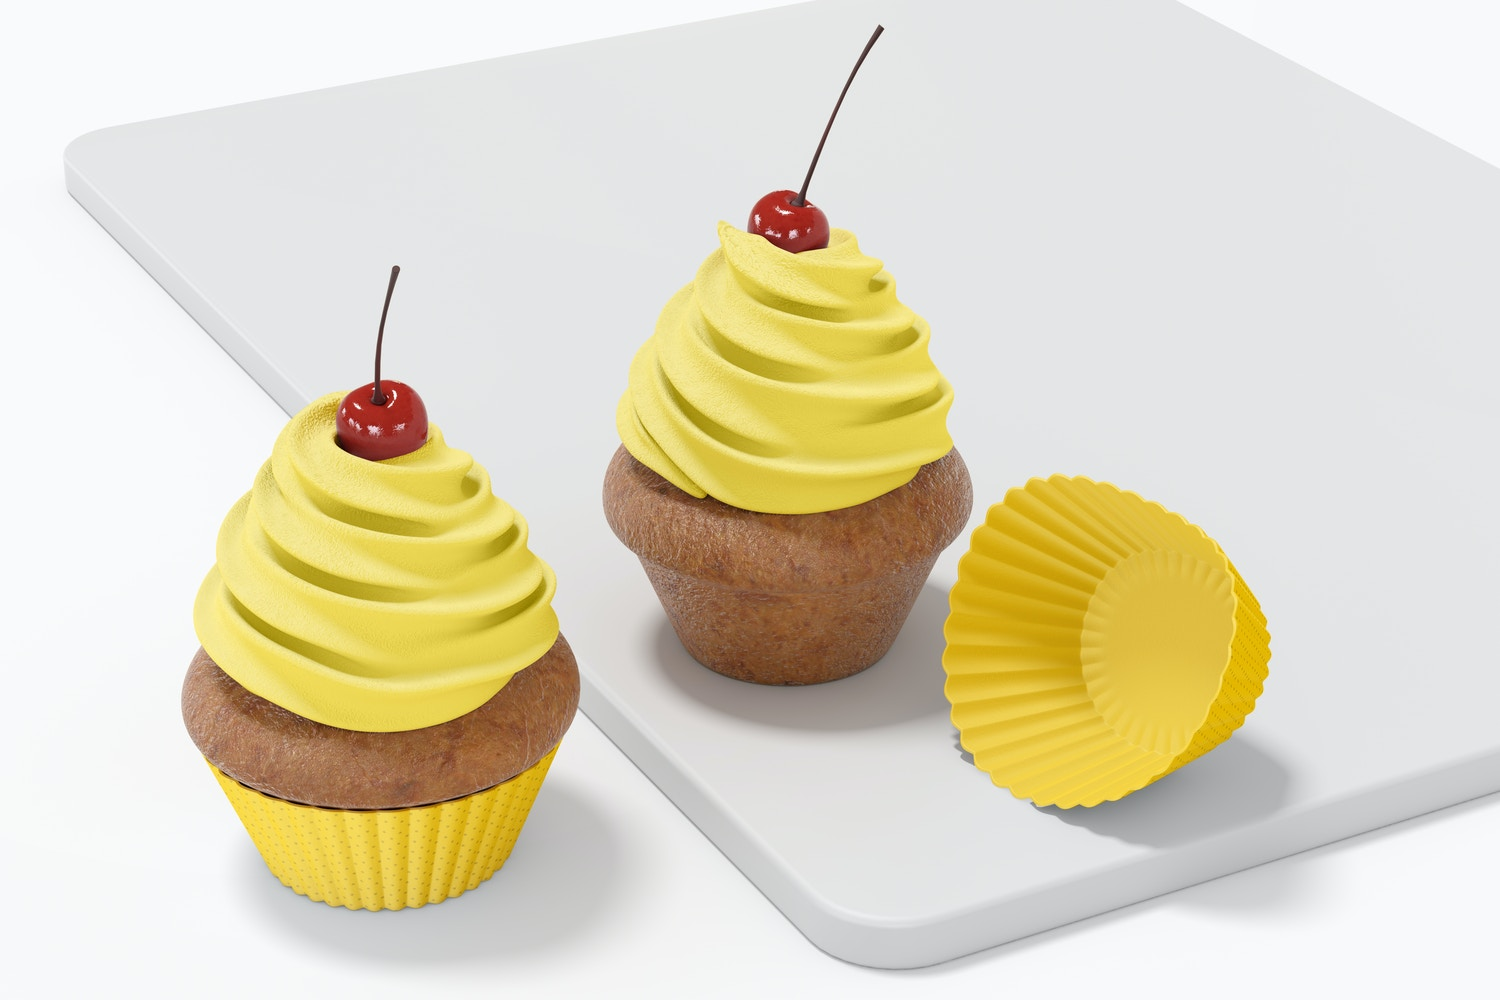 Cupcake with Silicone Baking Cup Set Mockup